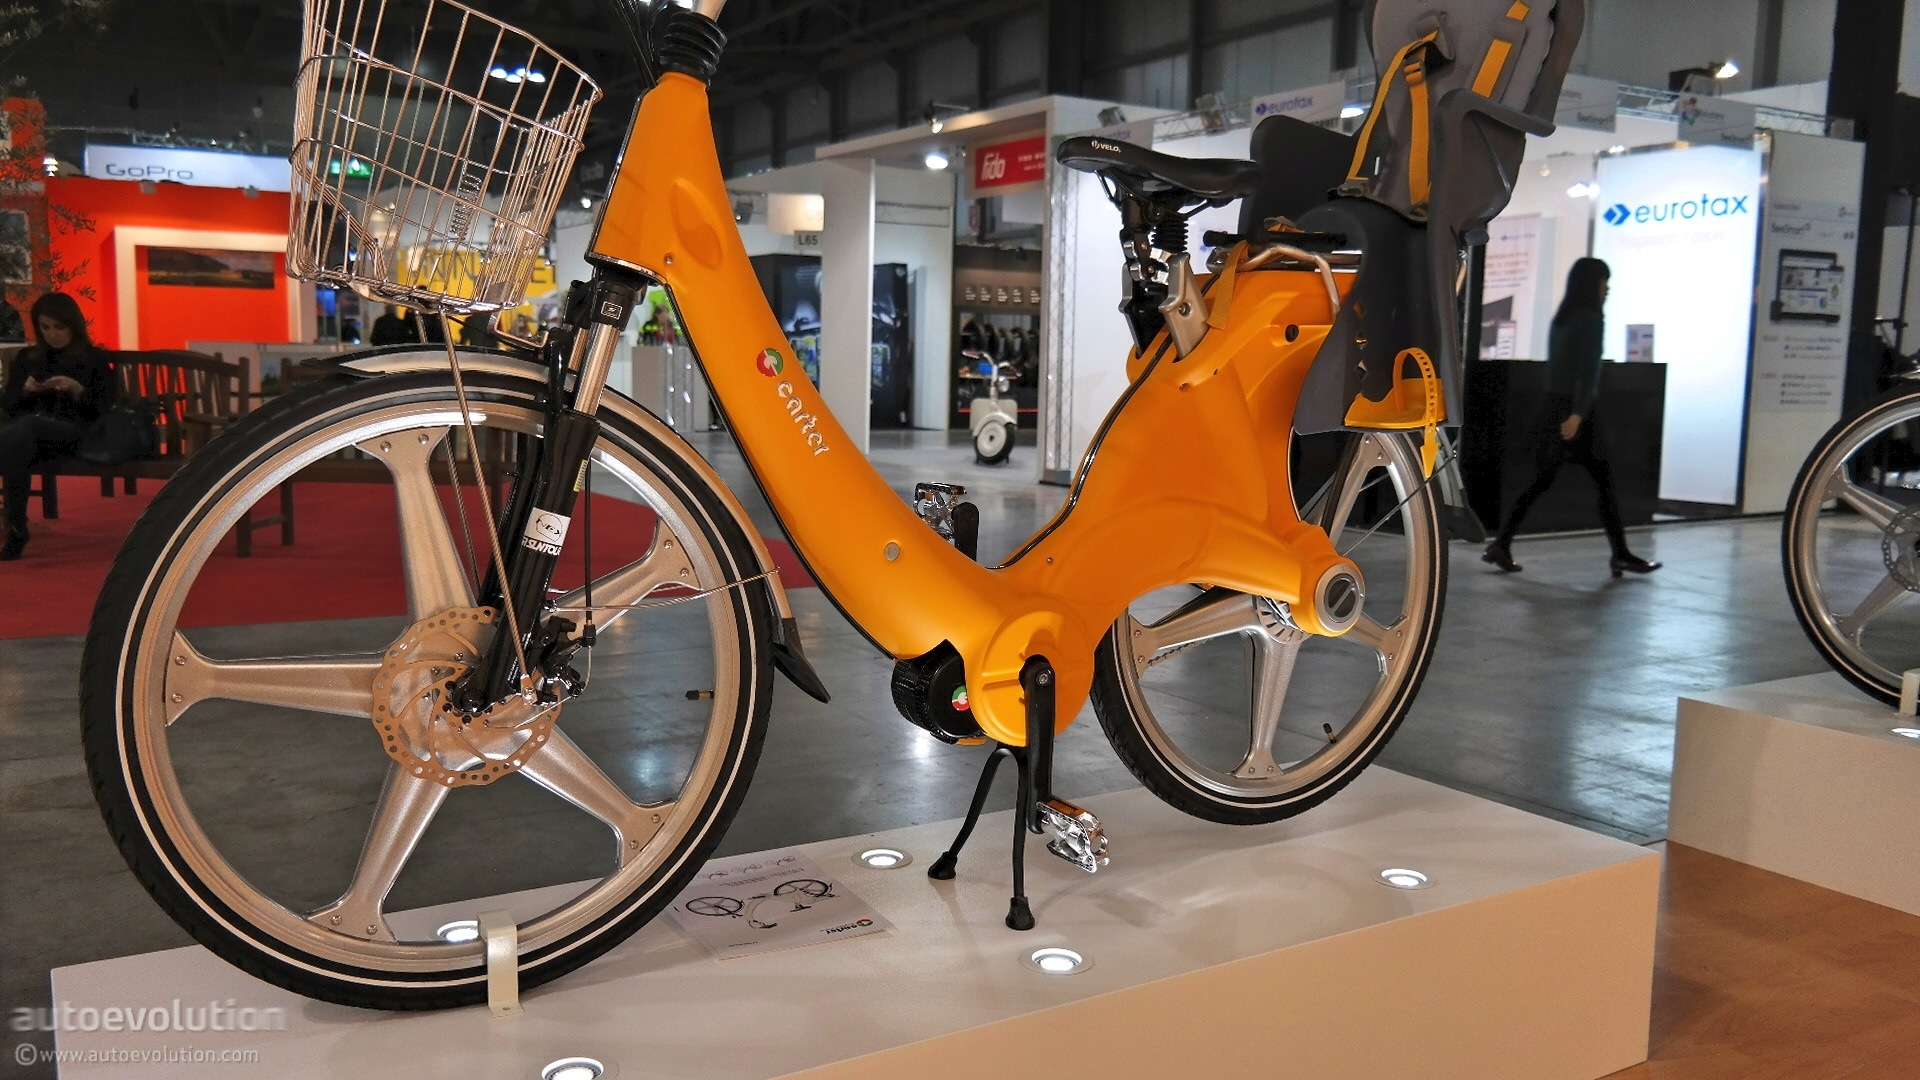 the-carter-ebike-shows-an-impressive-arsenal-of-optionals-at-eicma-2014-live-photos_19.jpg